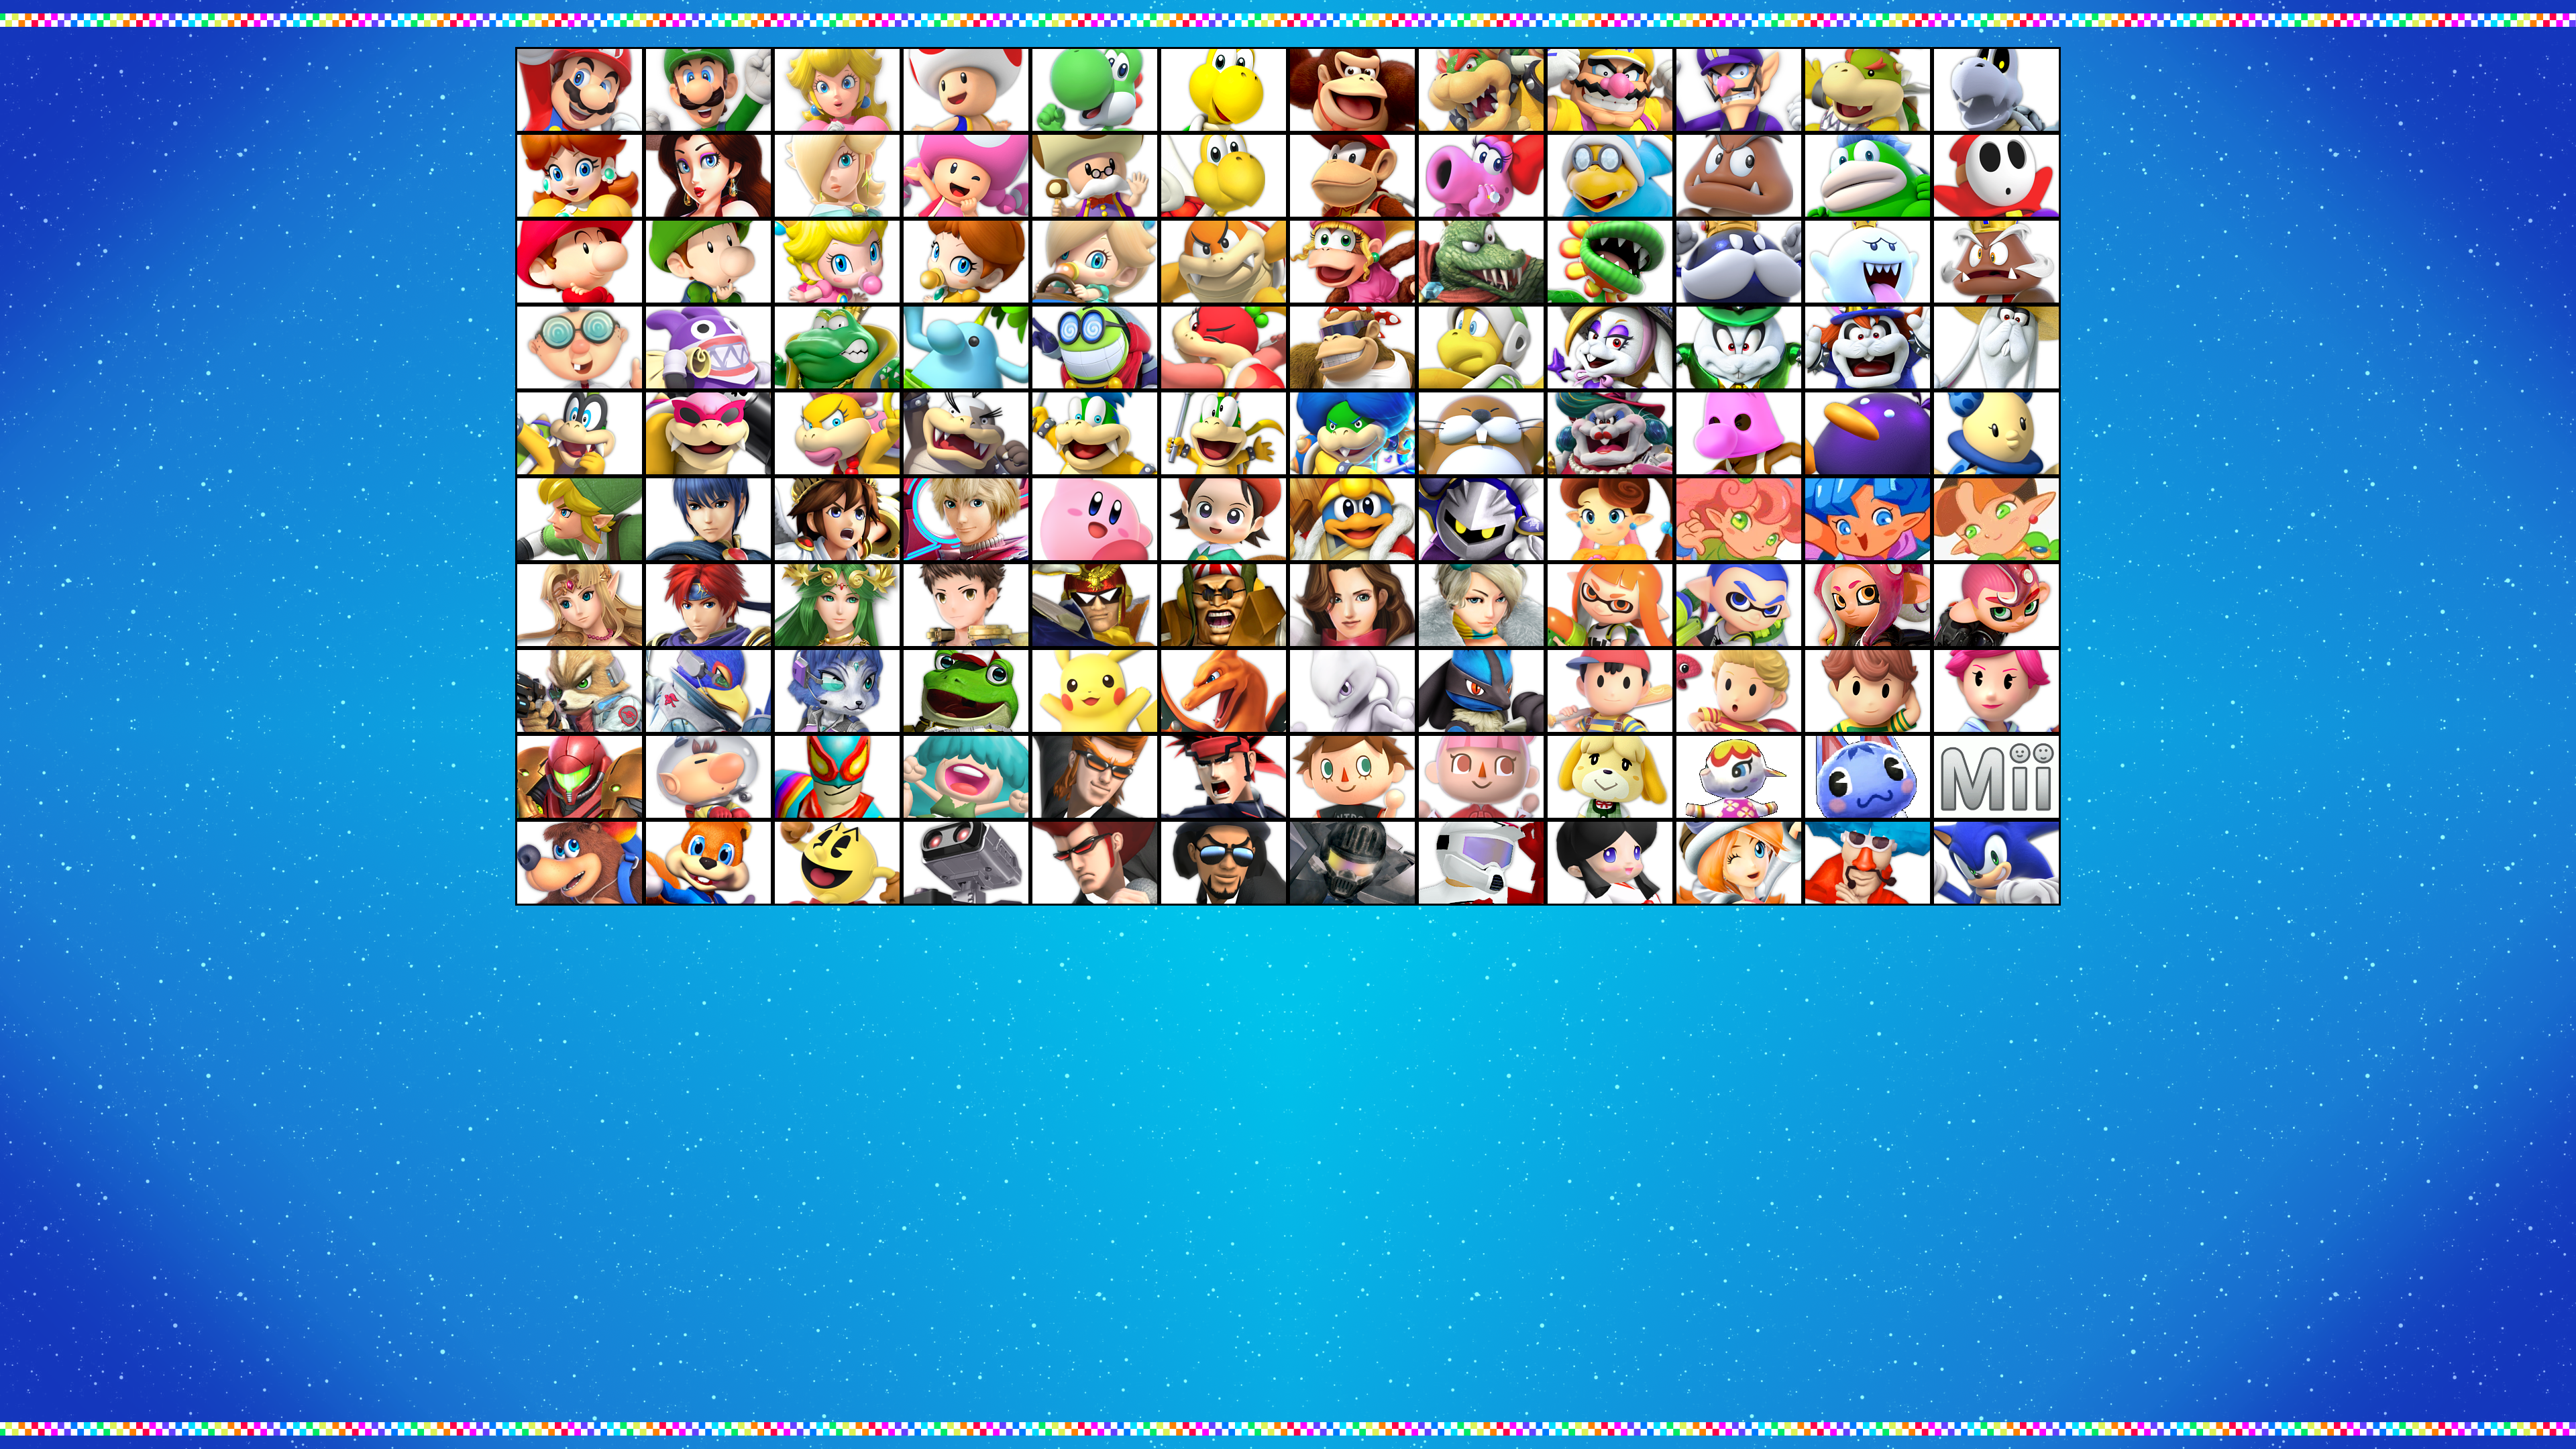 Super Mario Kart Ultimate The Character Roster By Wilsonasmara On